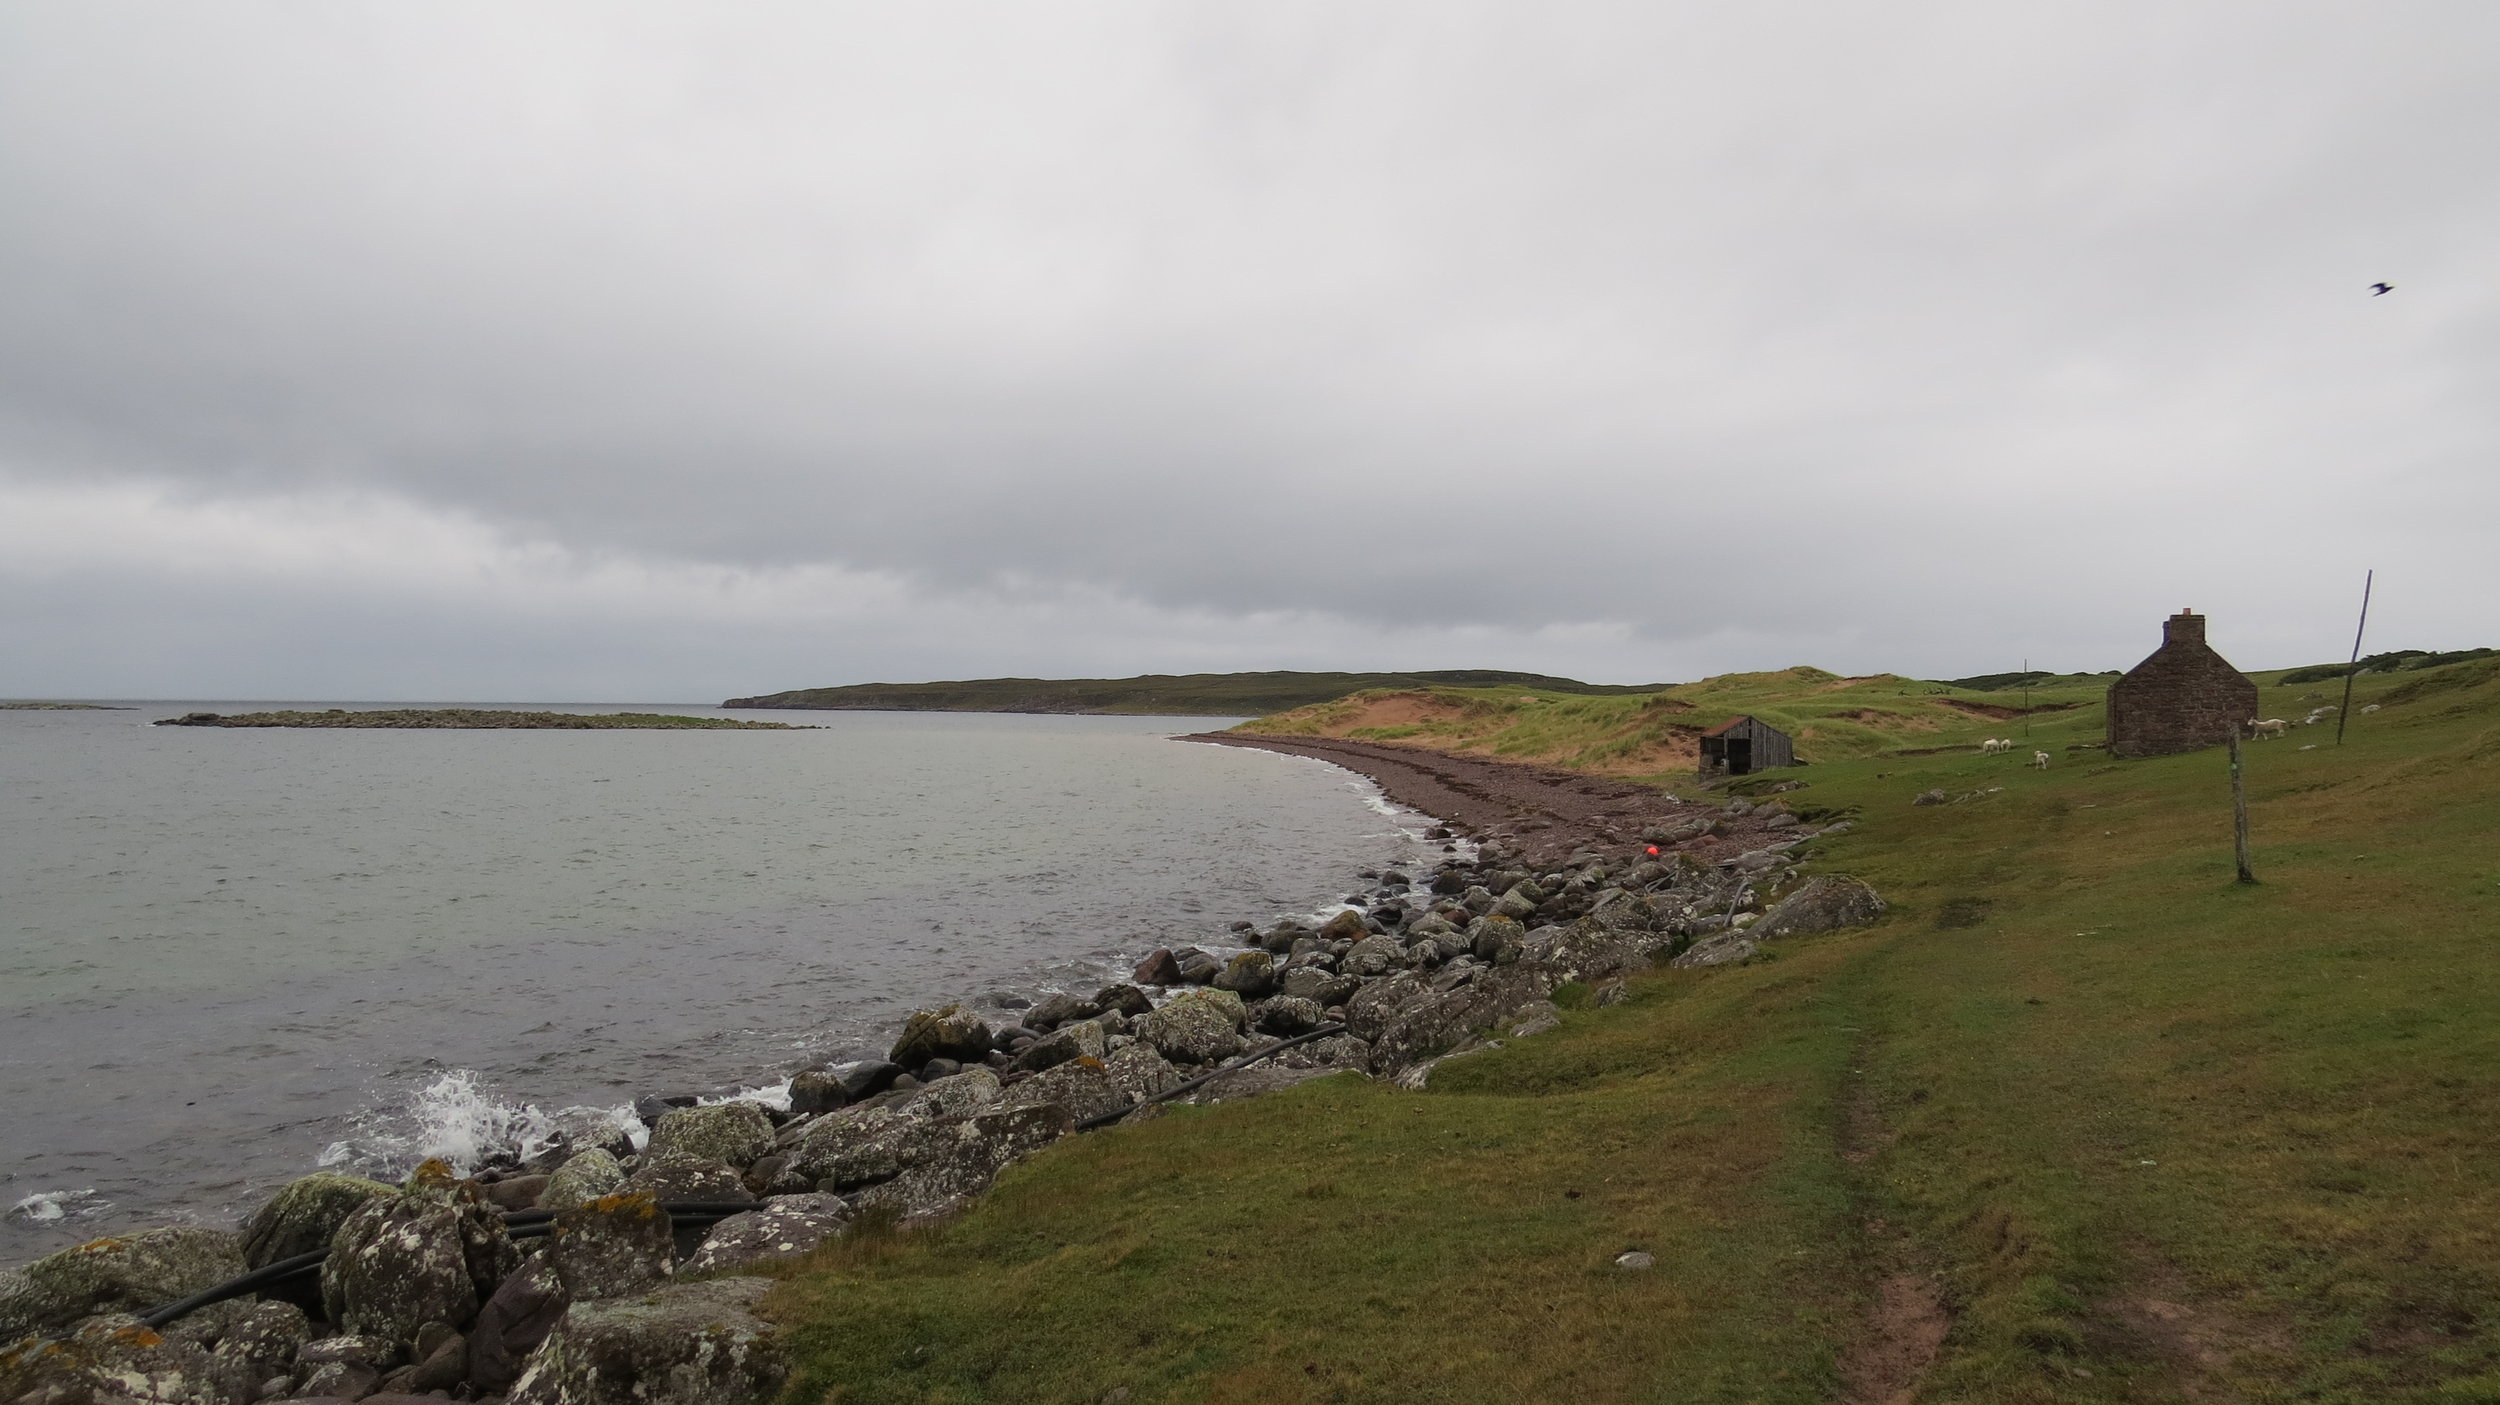 Looking towards Redpoint